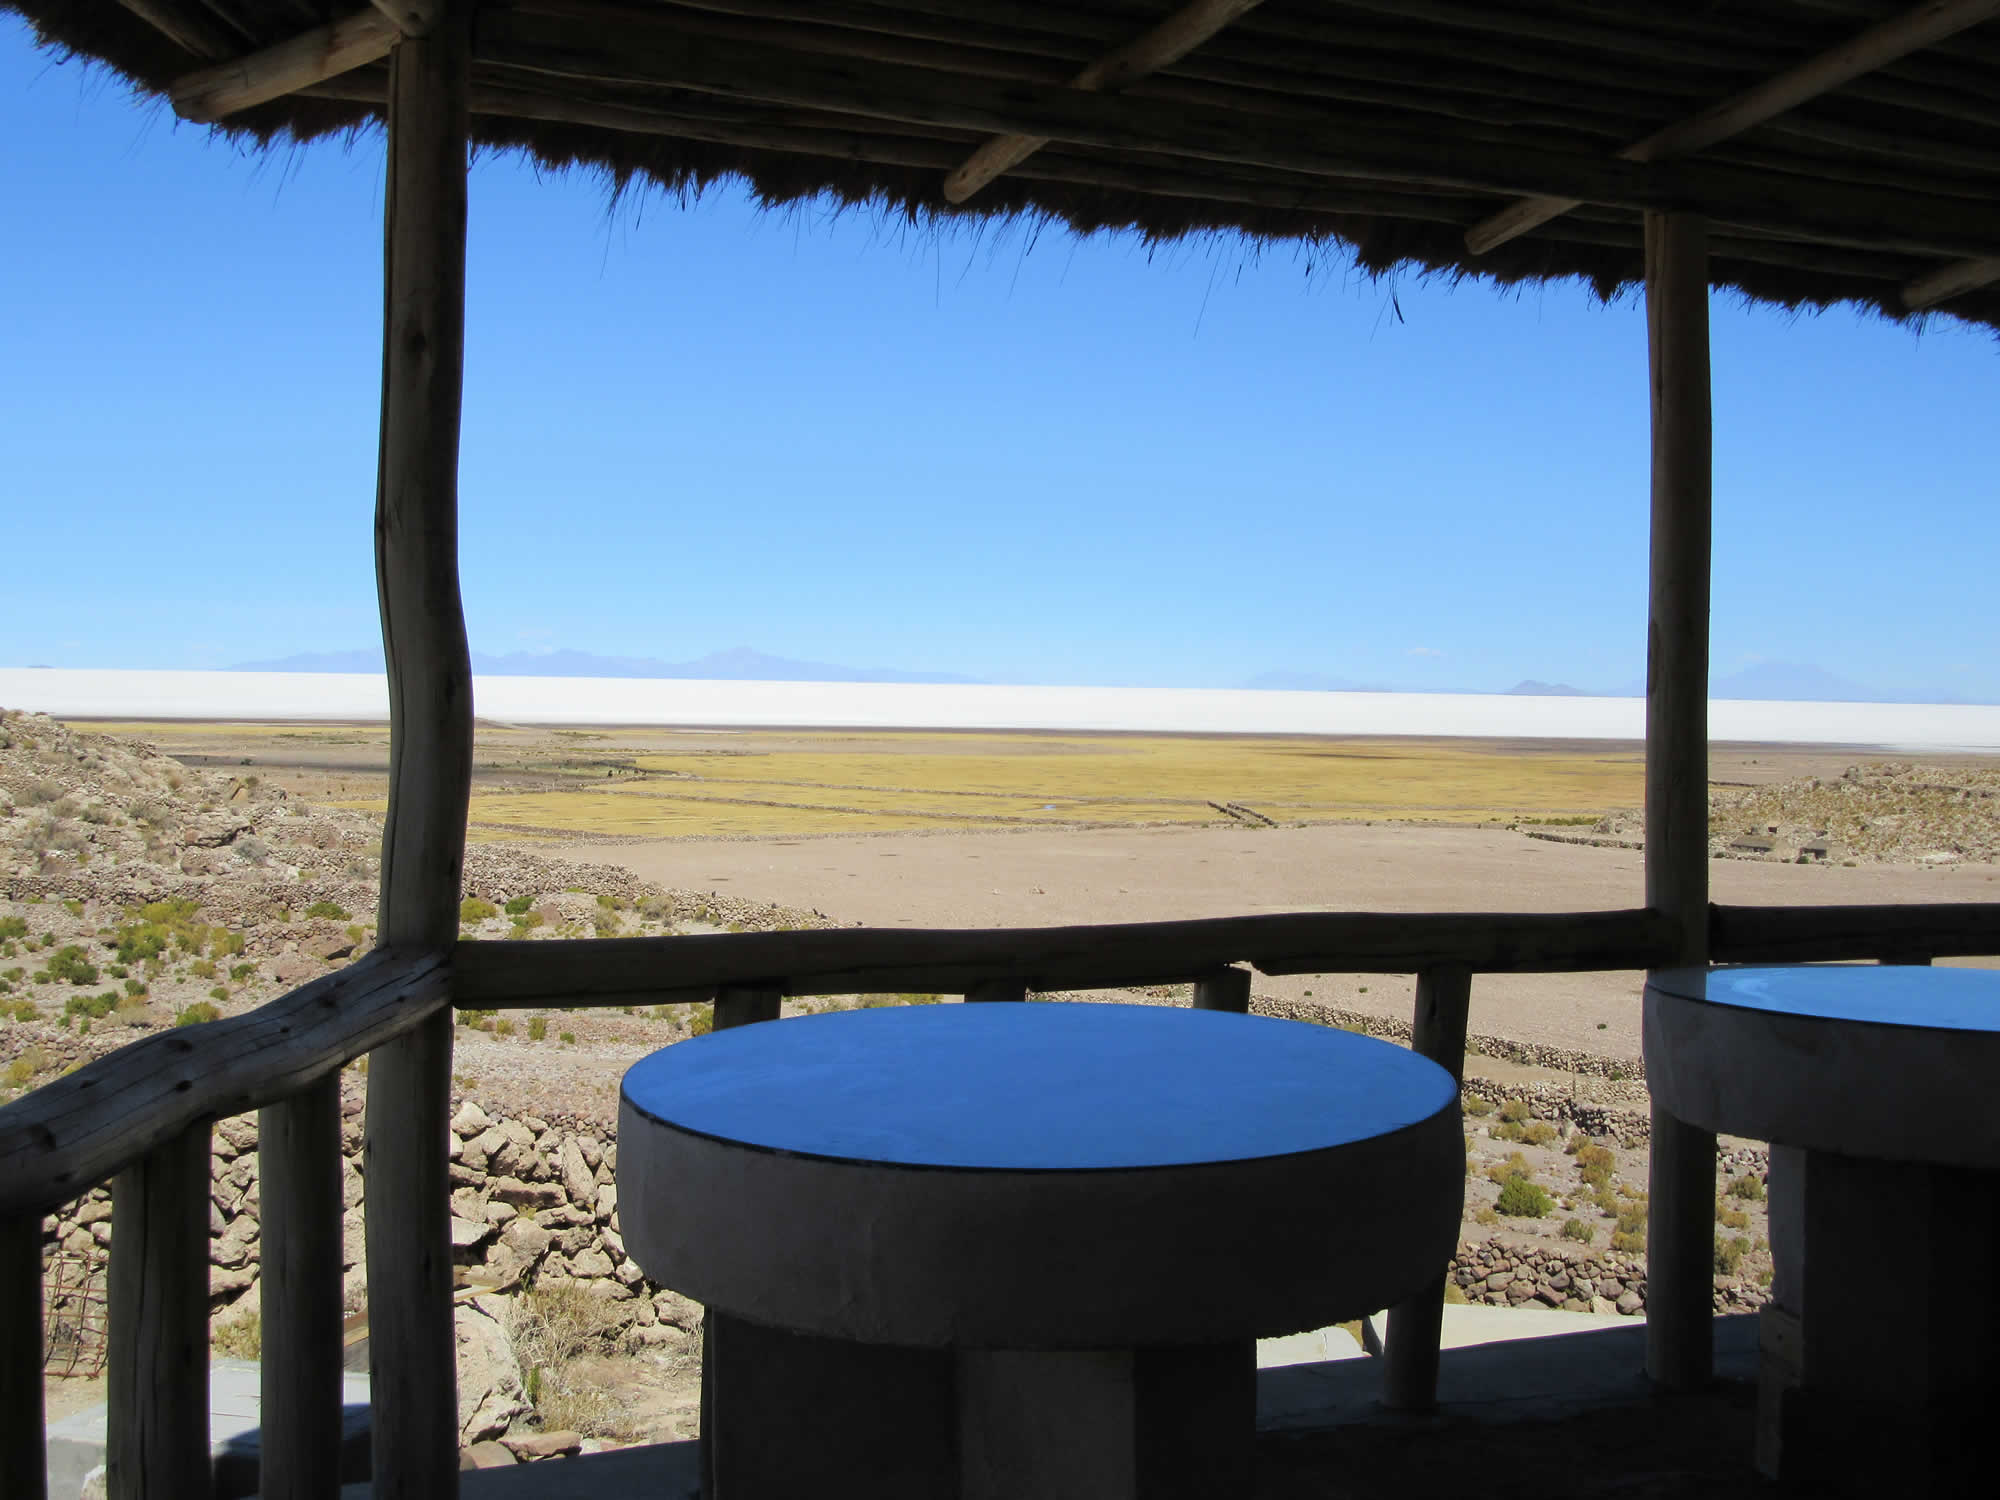 The hotel offers overwhelming views over the surrounding salt flat